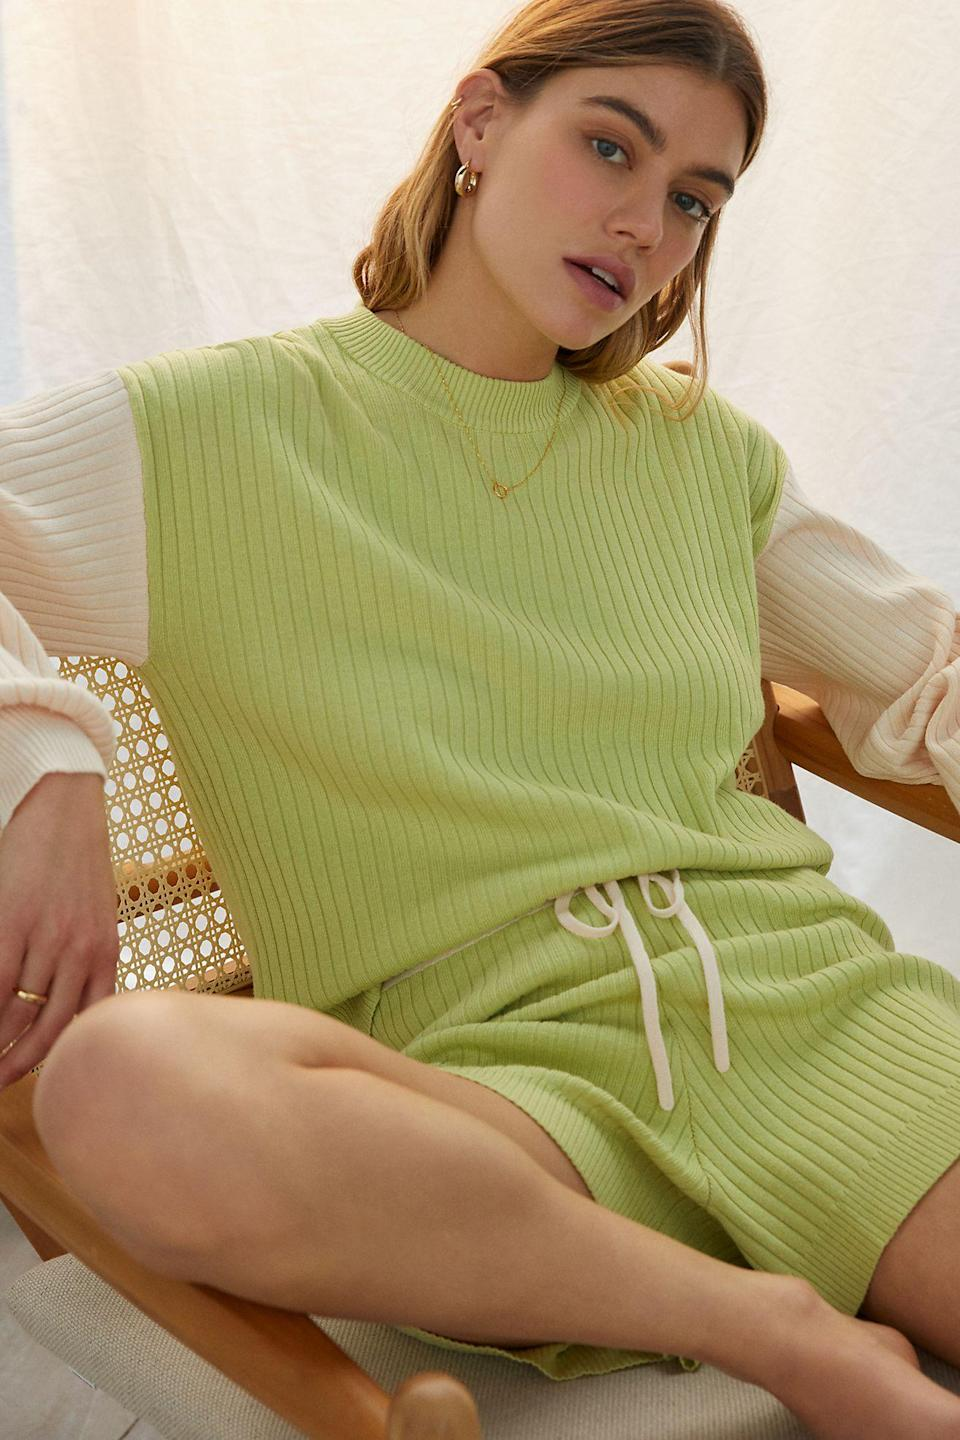 """<br><br><strong>Saturday/Sunday</strong> Colorblocked Knit Lounge Set, $, available at <a href=""""https://go.skimresources.com/?id=30283X879131&url=https%3A%2F%2Fwww.anthropologie.com%2Fshop%2Fcolorblocked-knit-lounge-set"""" rel=""""nofollow noopener"""" target=""""_blank"""" data-ylk=""""slk:Anthropologie"""" class=""""link rapid-noclick-resp"""">Anthropologie</a>"""